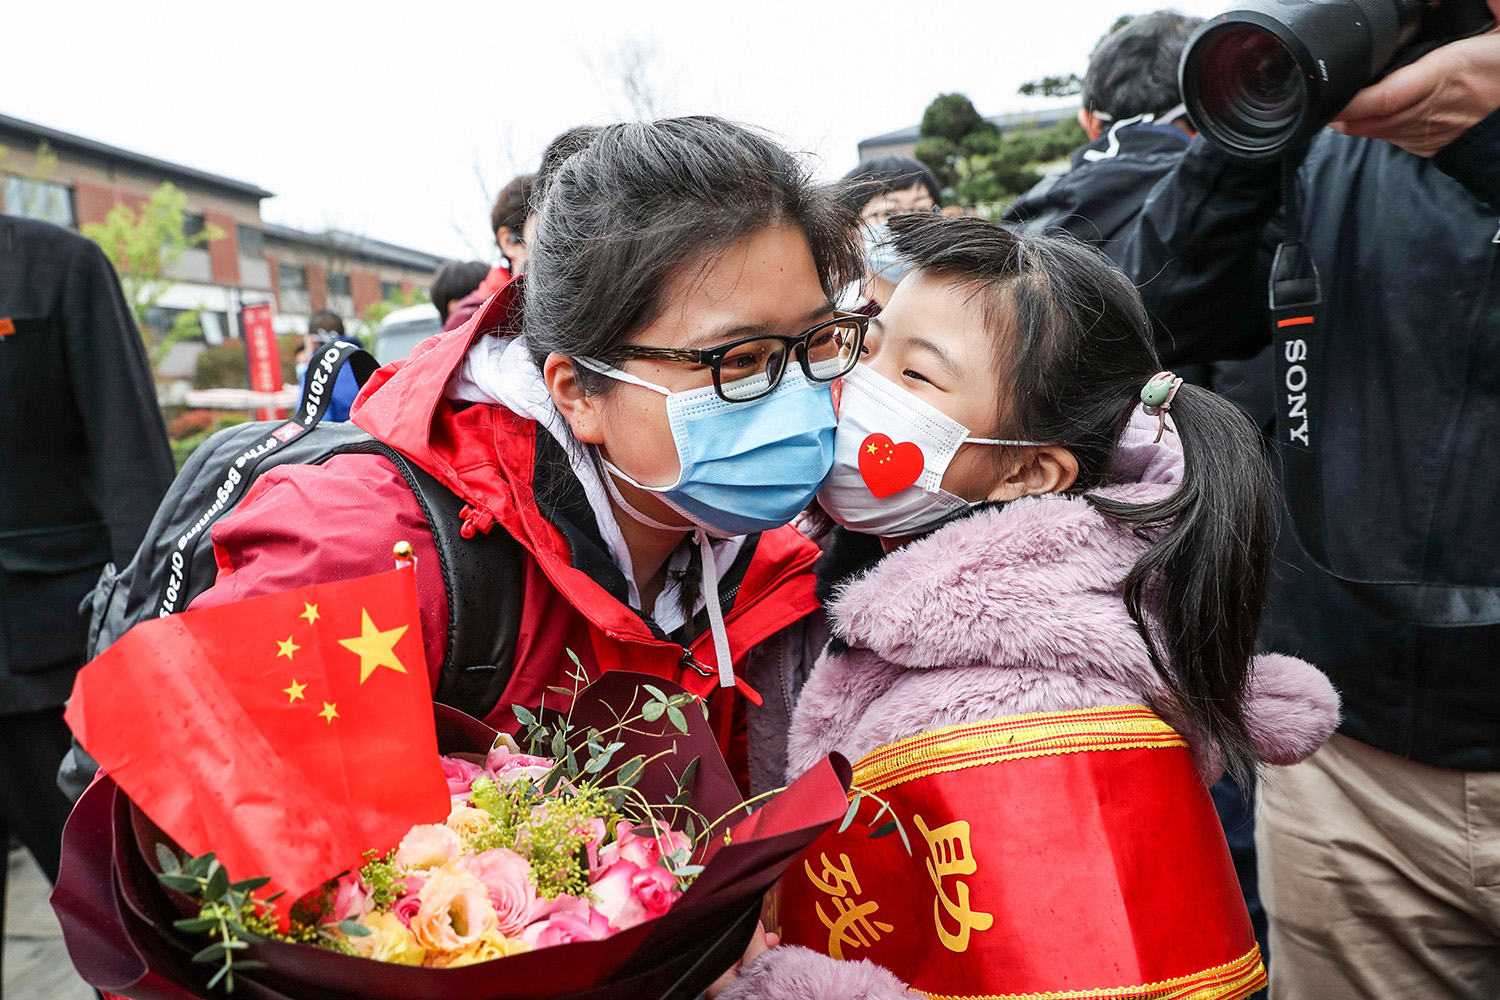 A member of a medical assistance team from Huai'an, China, is welcomed home by her daughter March 31 after working in Wuhan to help with the coronavirus recovery effort. STR/AFP via Getty Images